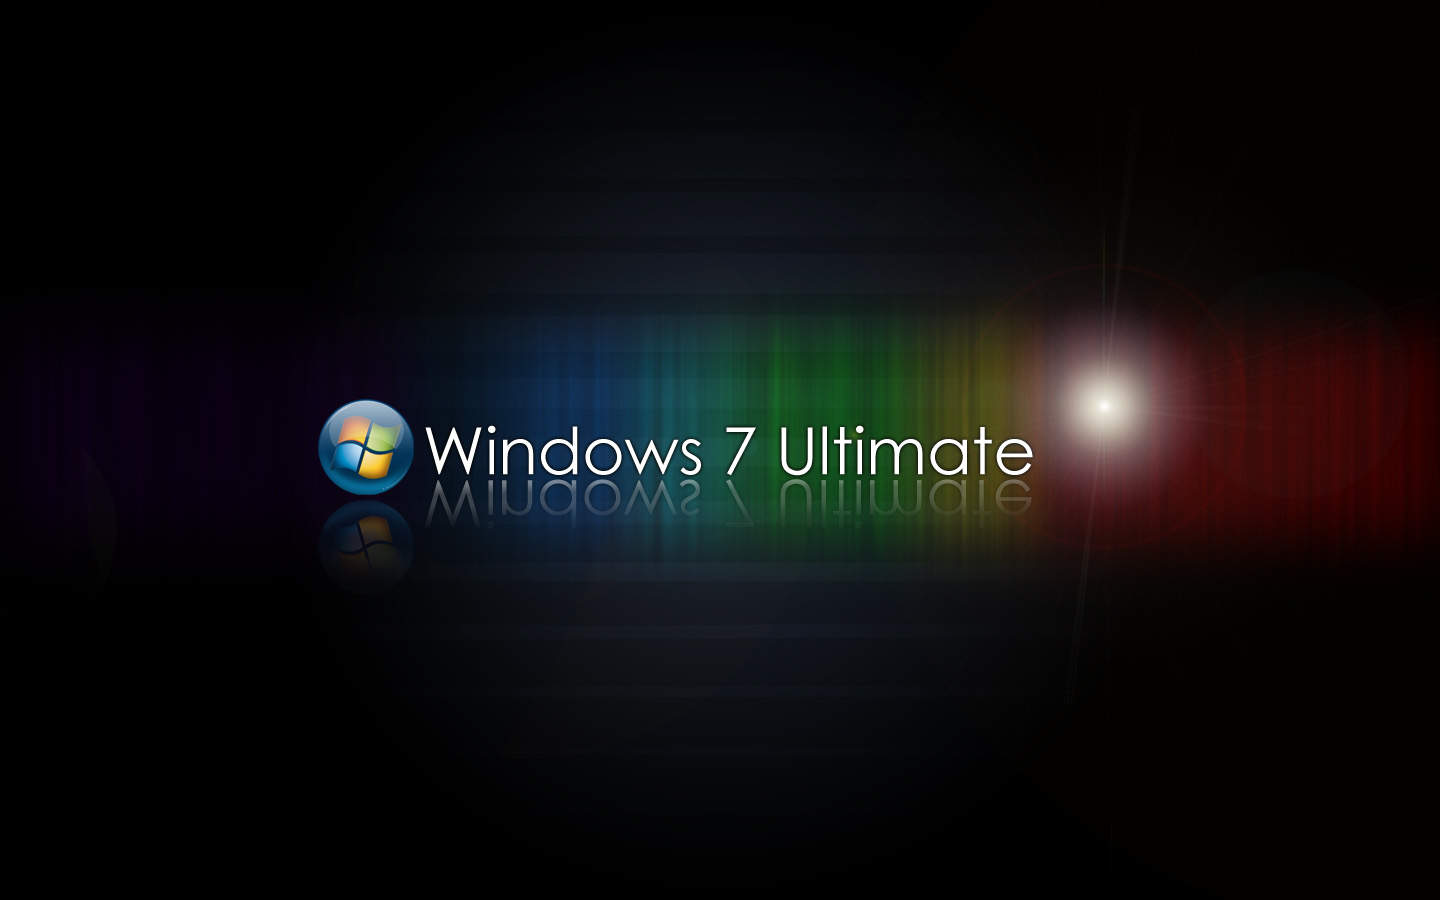 Window 7 Ultimate Of Windows 7 Ultimate Highly Compressed Free Download